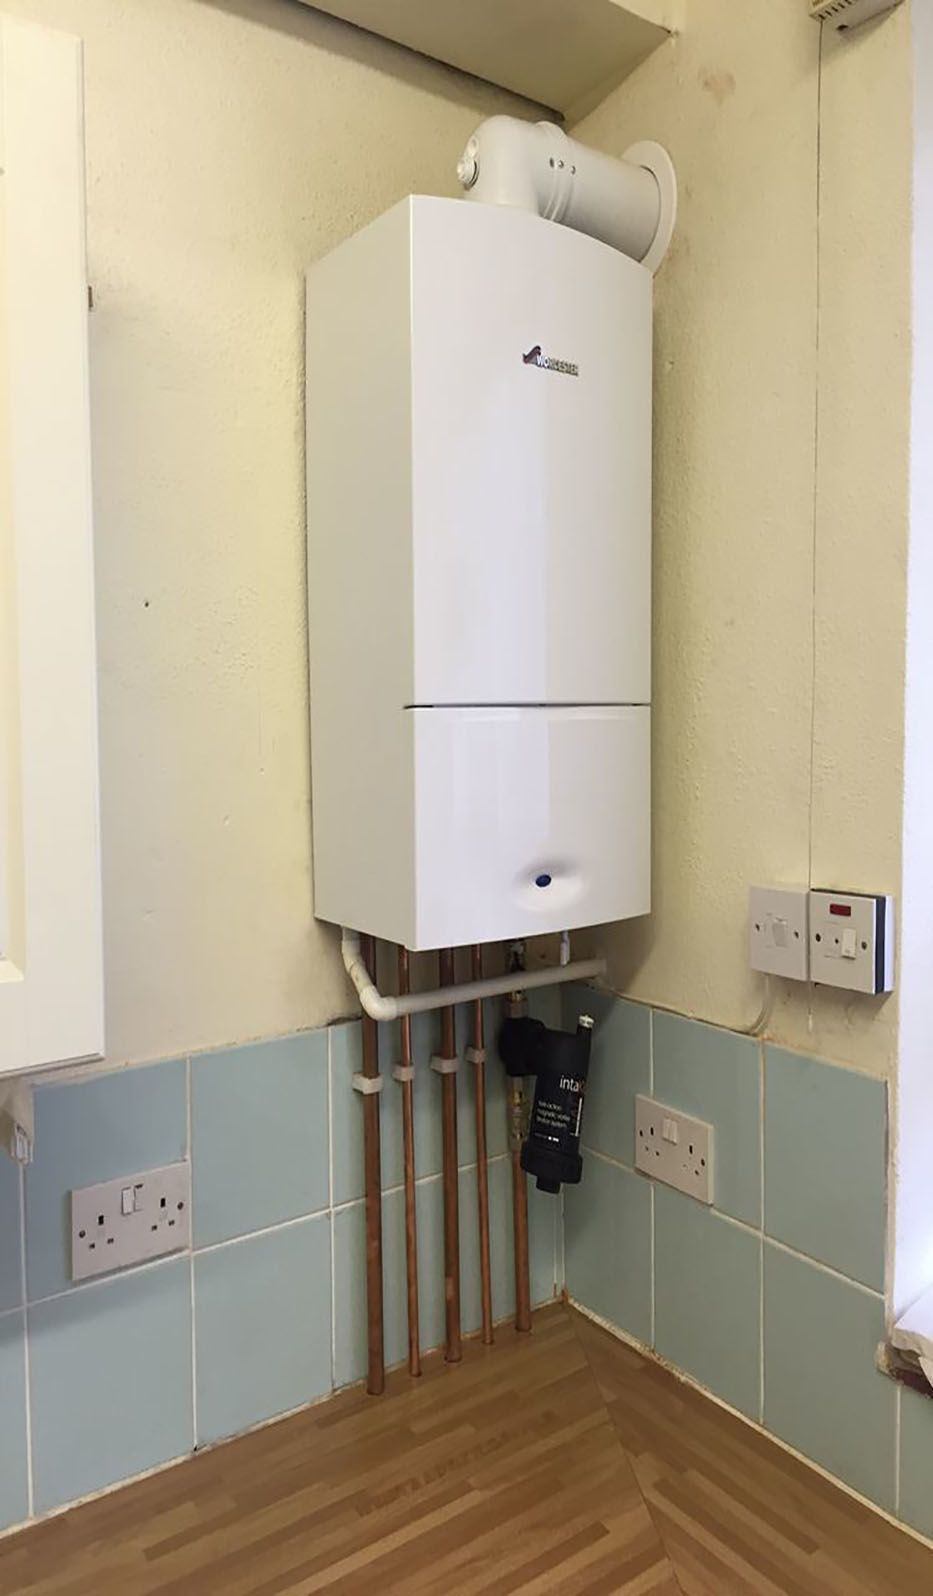 We can help convert your system from tank fed to mains fed, by our plumbing & heating engineer in Cricklewood.